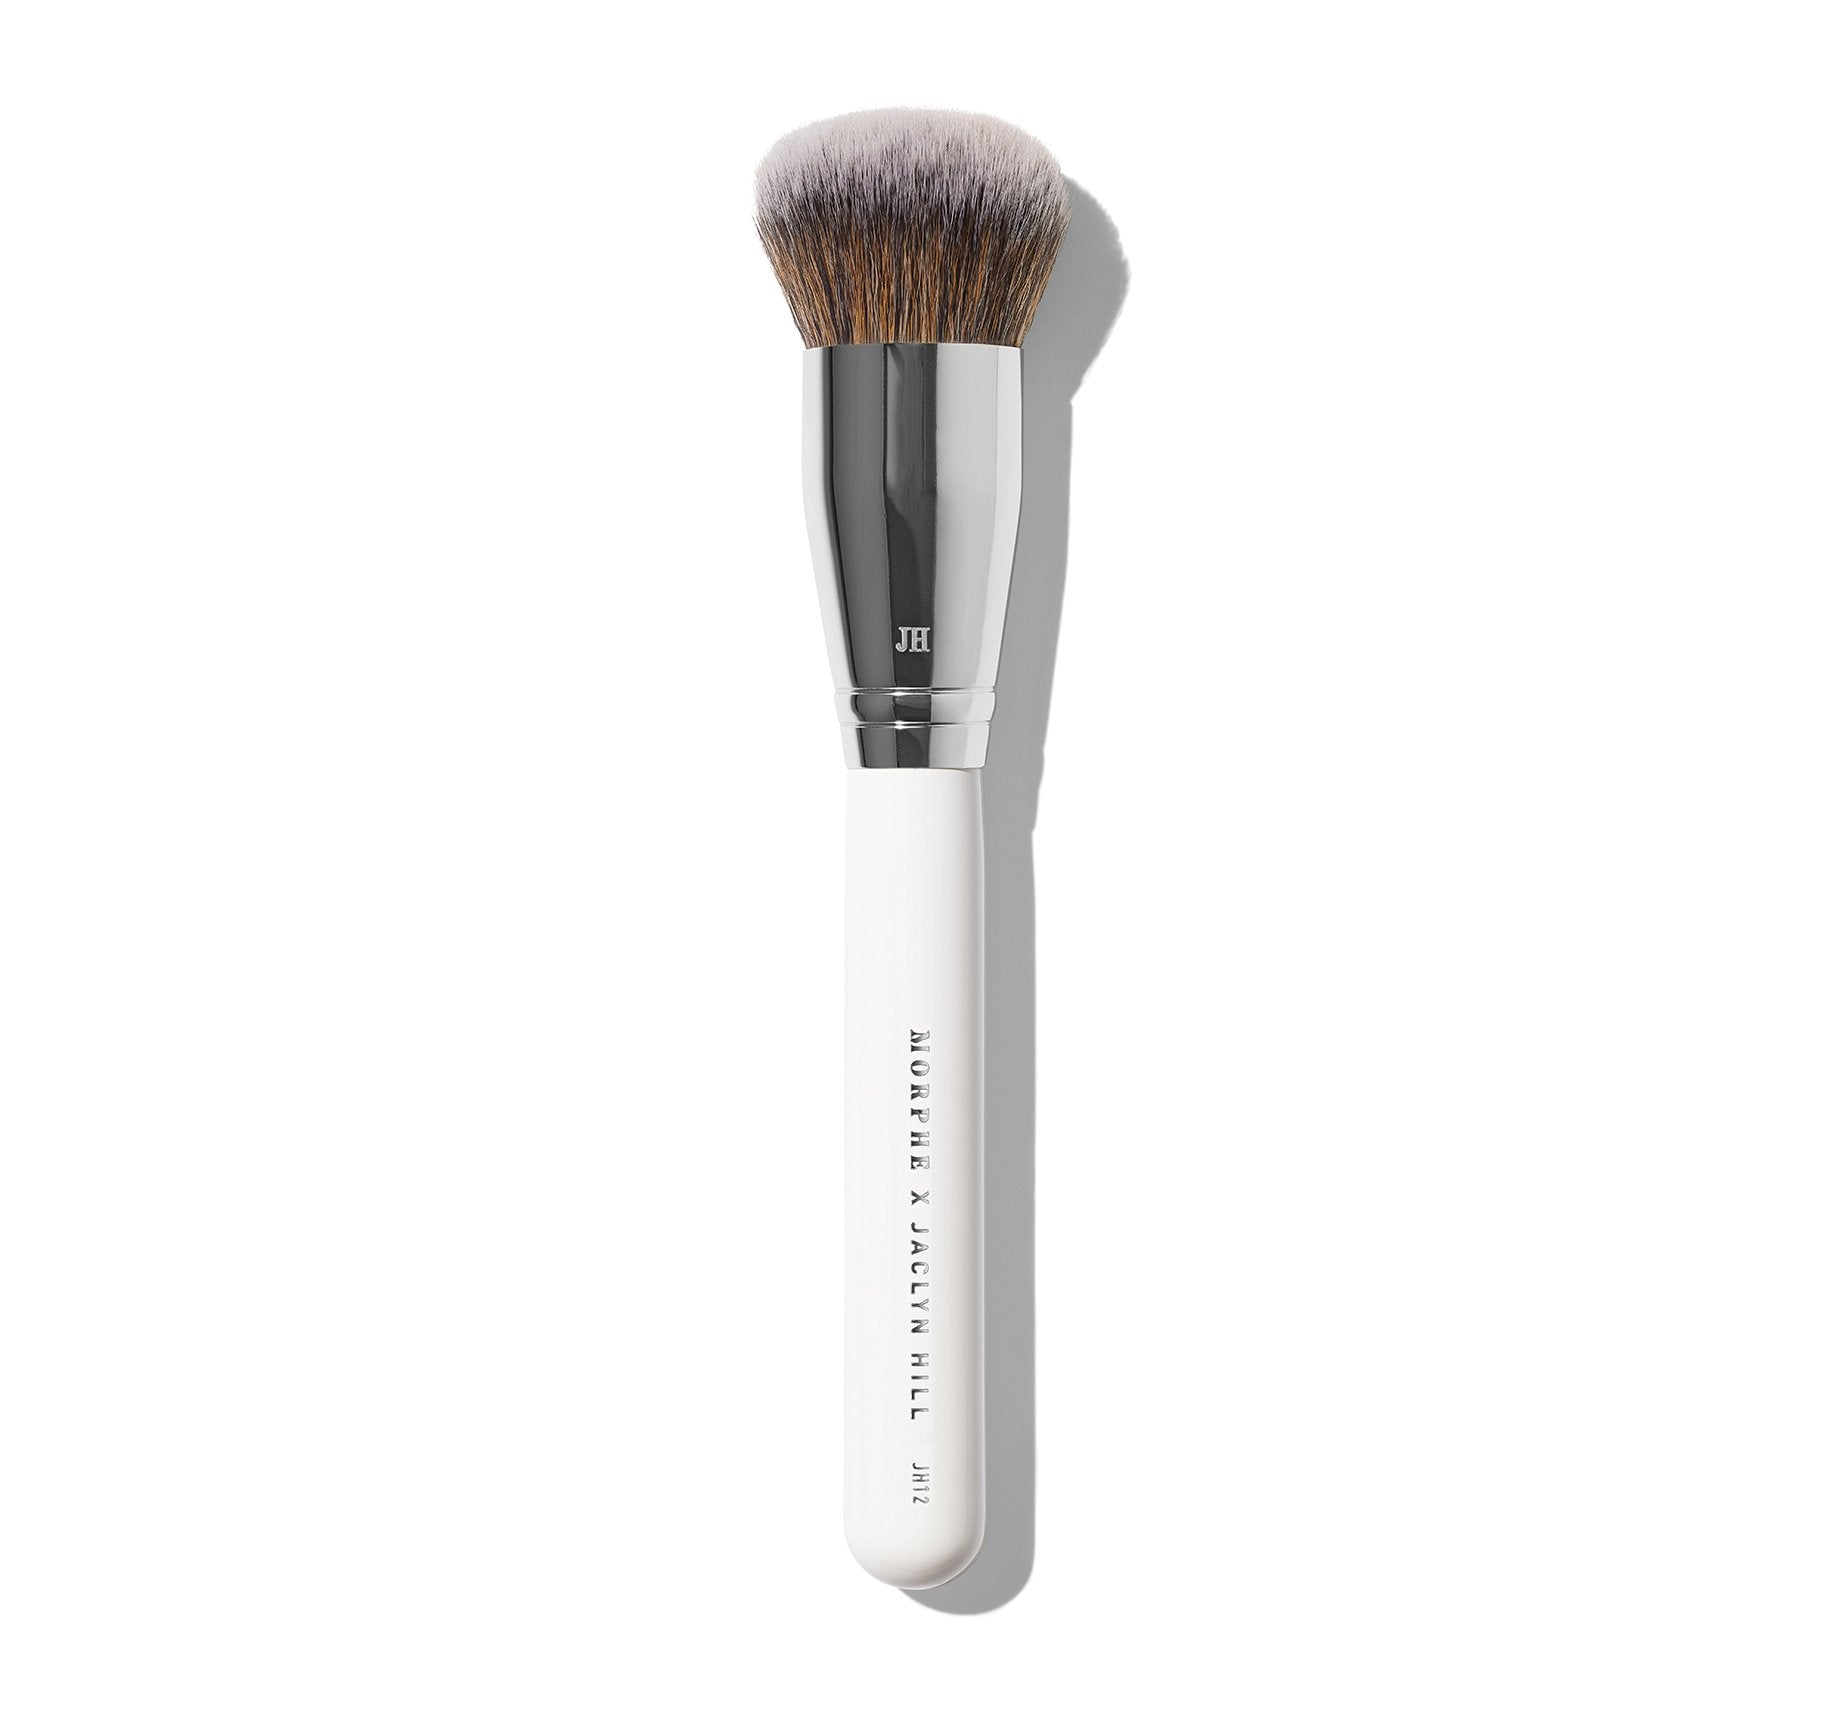 MORPHE X JACLYN HILL JH12 UNDERCOVER LOVER BRUSH, view larger image